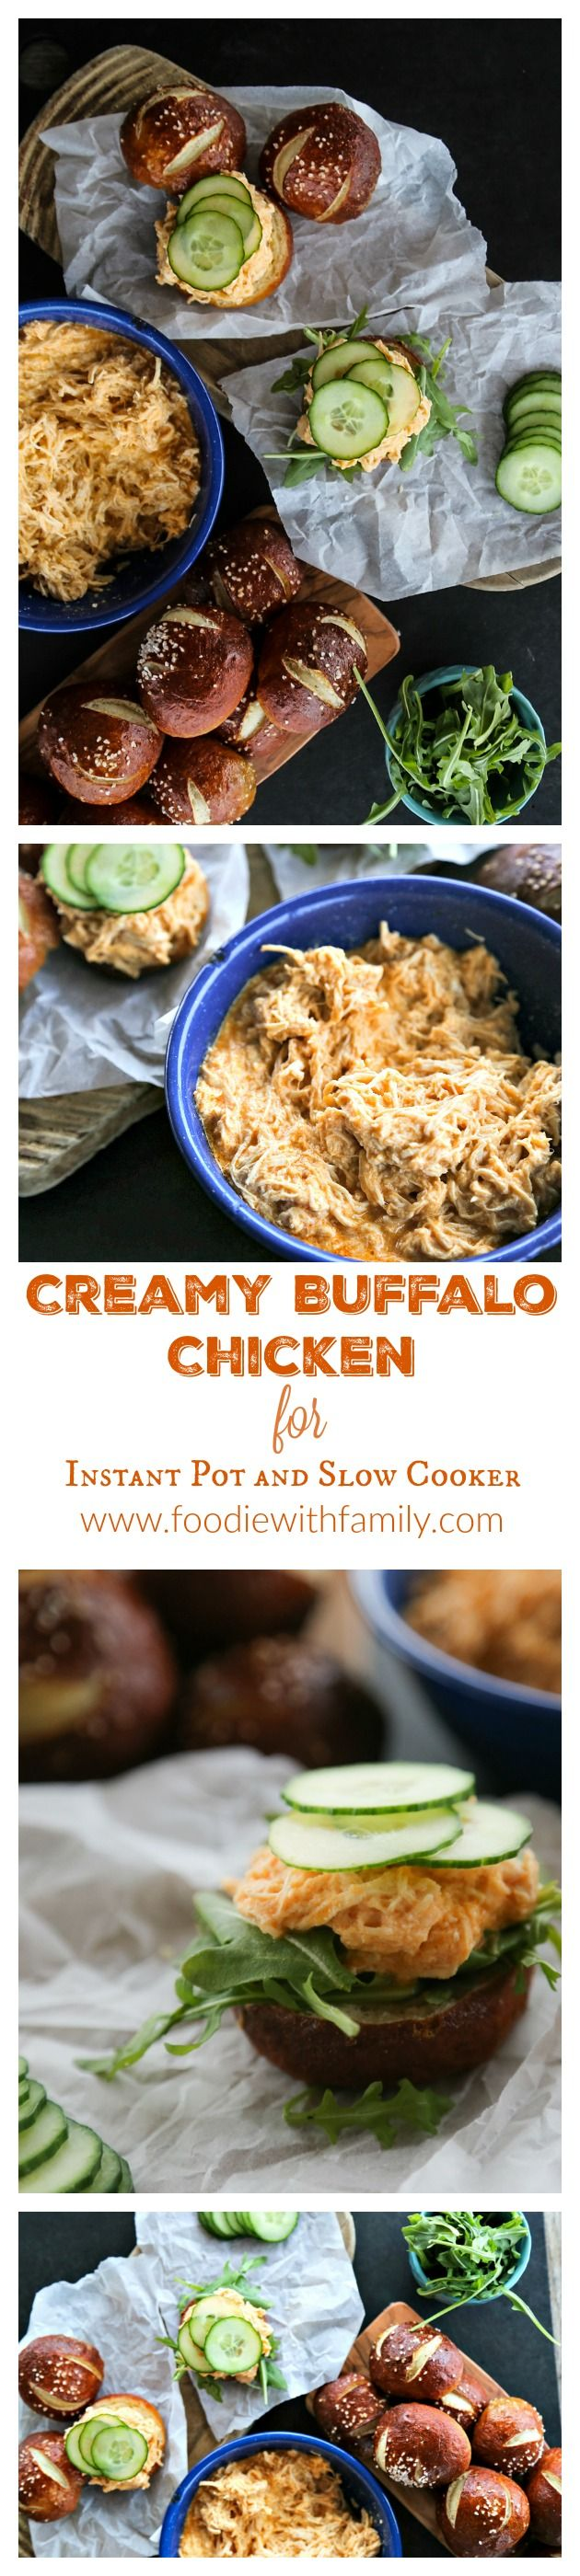 Creamy Buffalo Chicken for Instant Pot or Slow Cooker